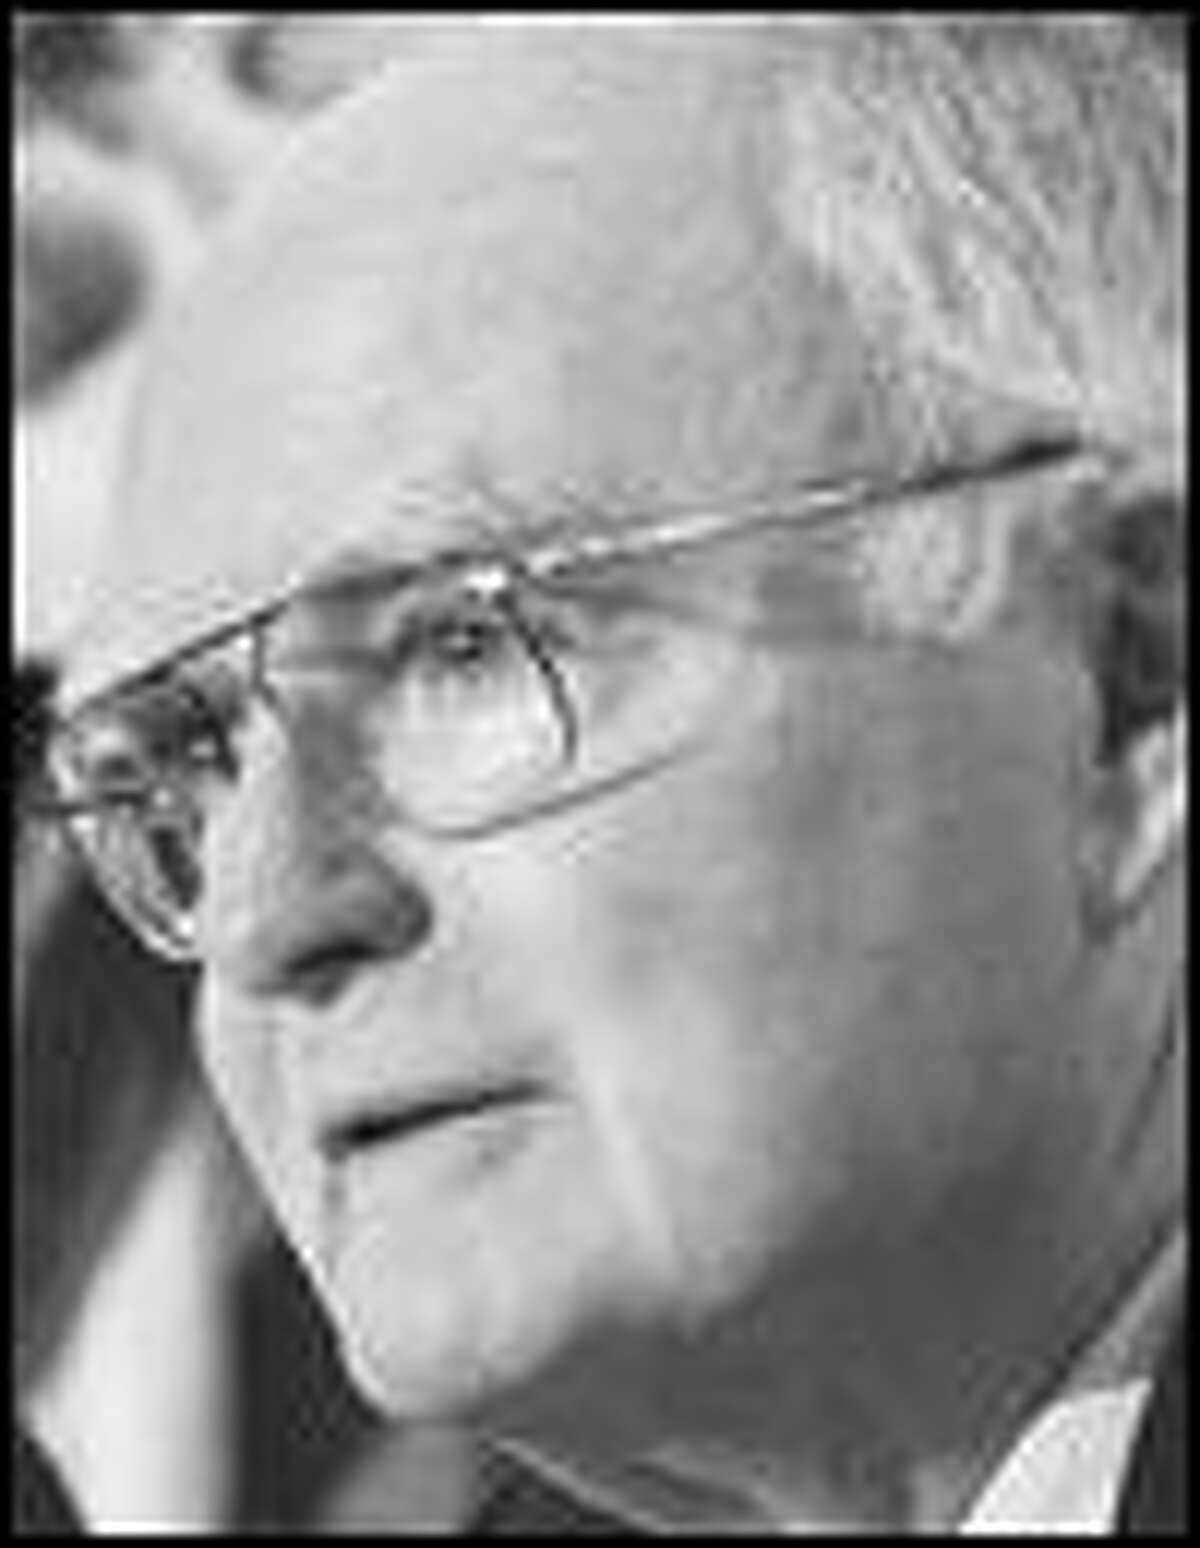 Bill Ruckelshaus: The founding head of EPA, the rescuer of EPA, the deputy attorney general who resigned rather than fire Watergate special prosecutor. The kind of Republican who is today a critically endangered species.